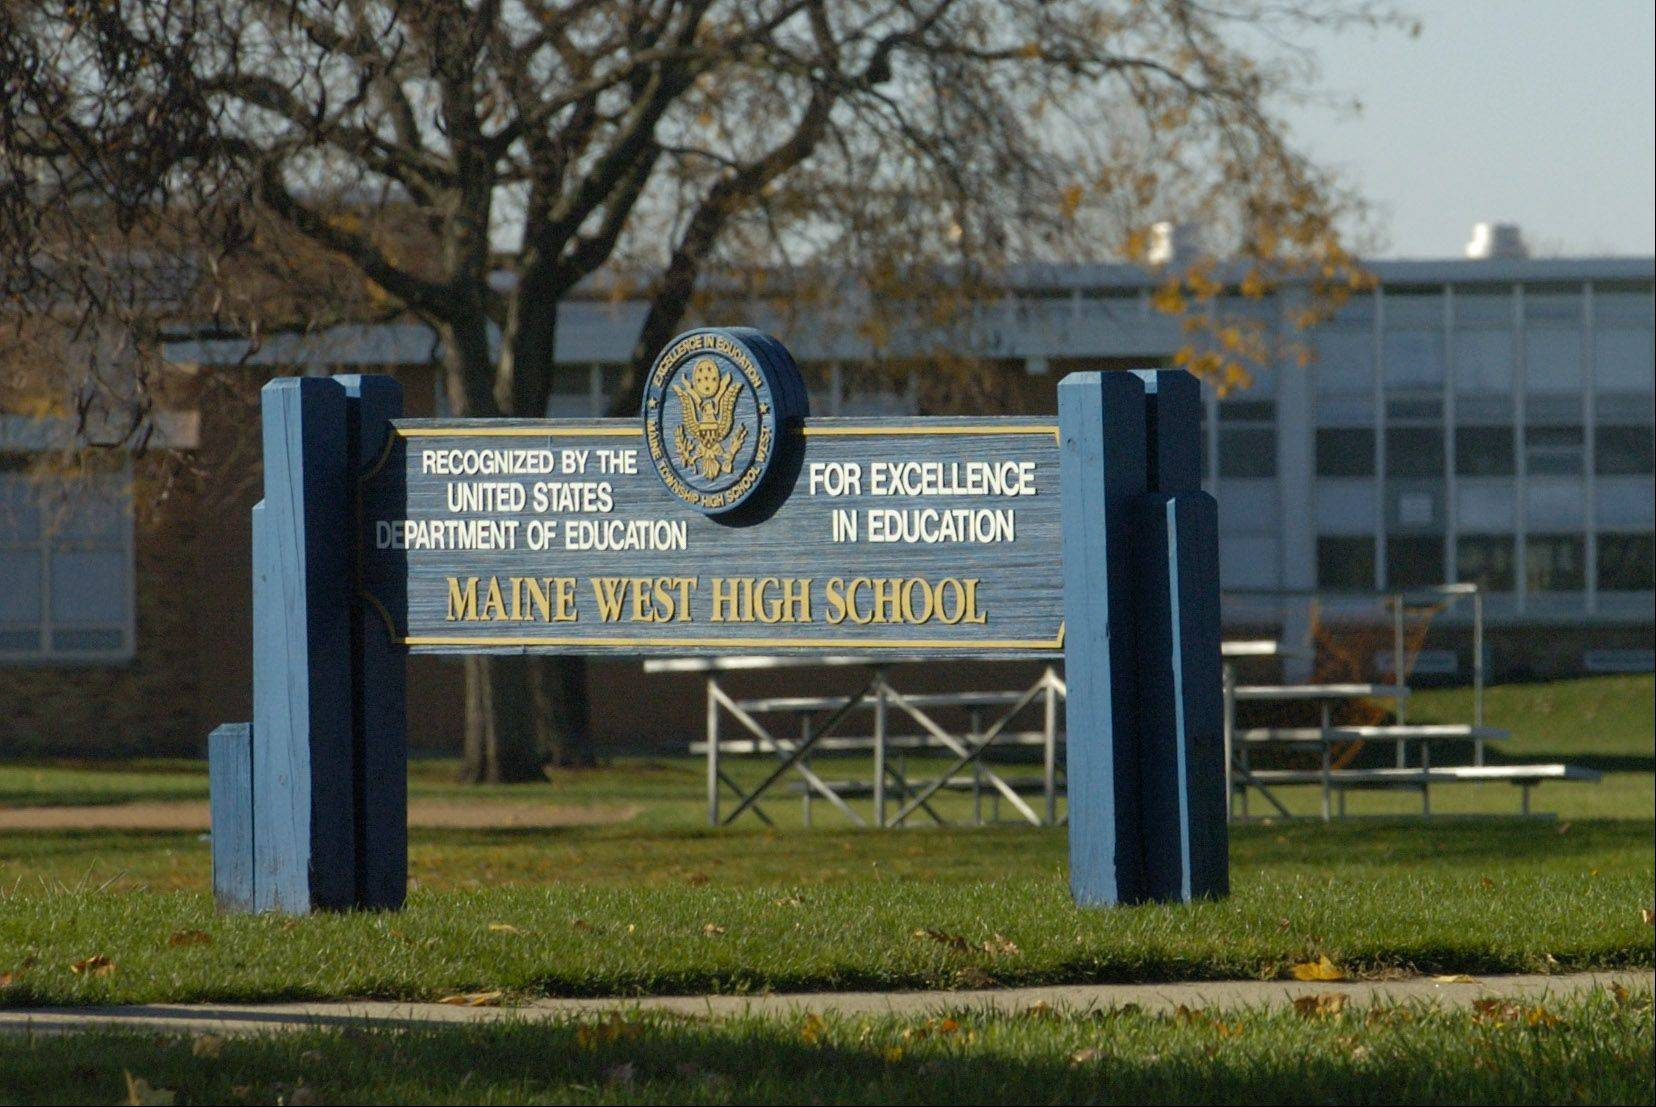 Des Plaines police have petitioned six Maine West High School students to juvenile court on charges of battery and hazing in a Sept. 27 incident. District 207 officials have acknowledged that a 2008 hazing incident has similarities to this 2012 incident.